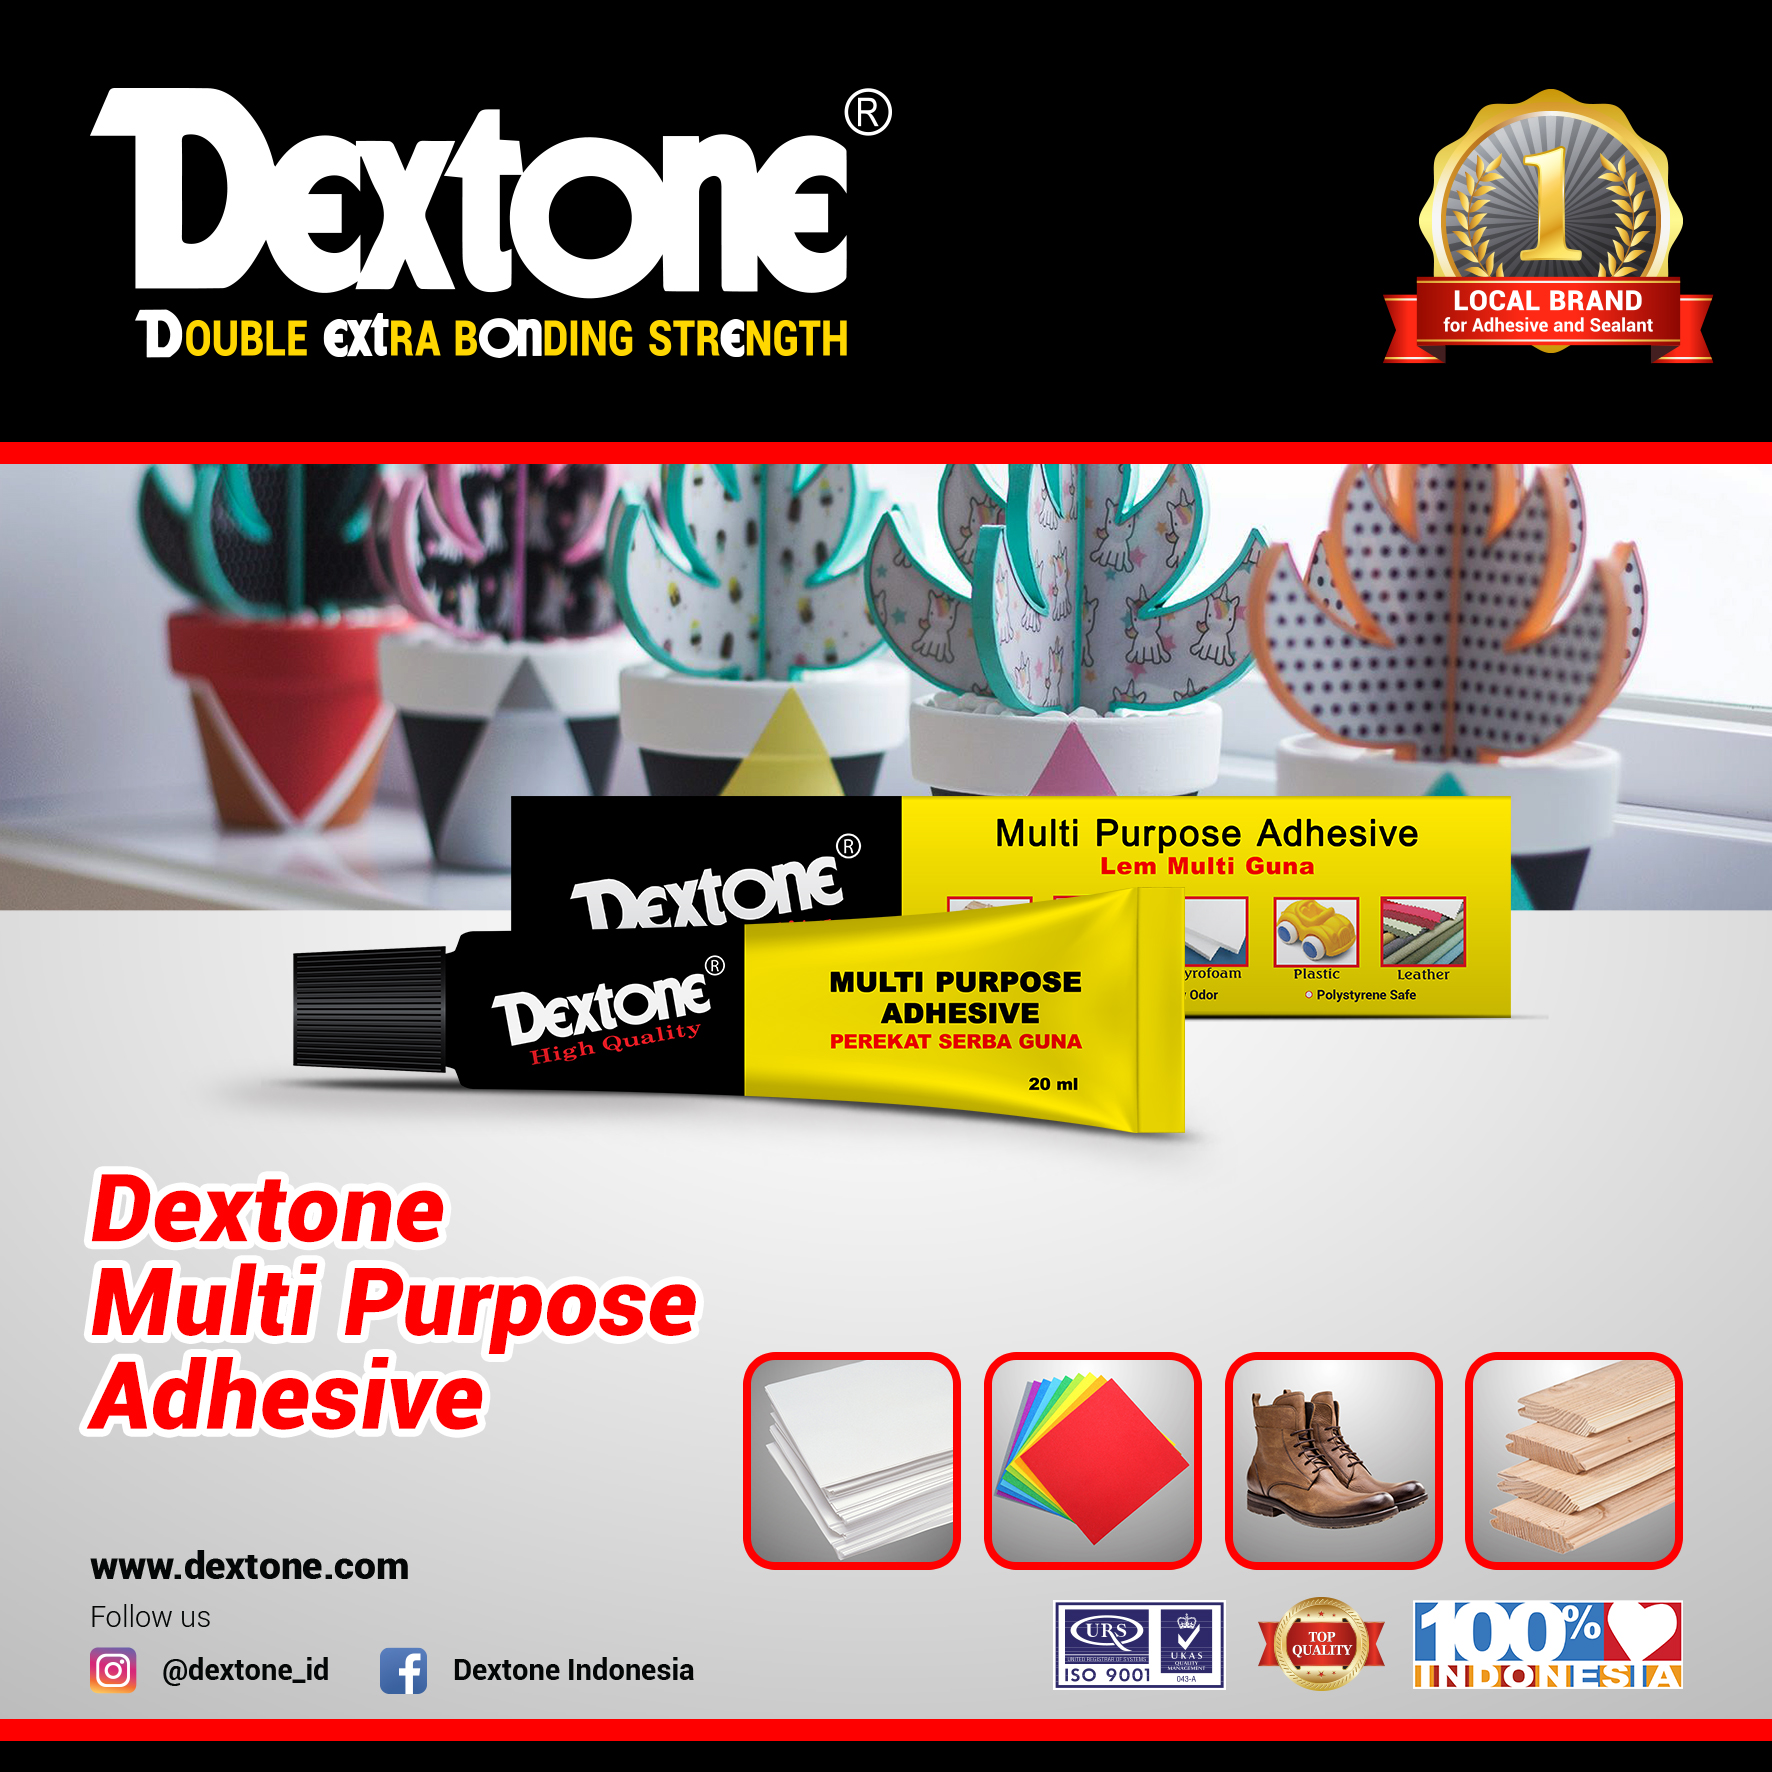 Dextone Multifunctionele Clear Contact Lijm